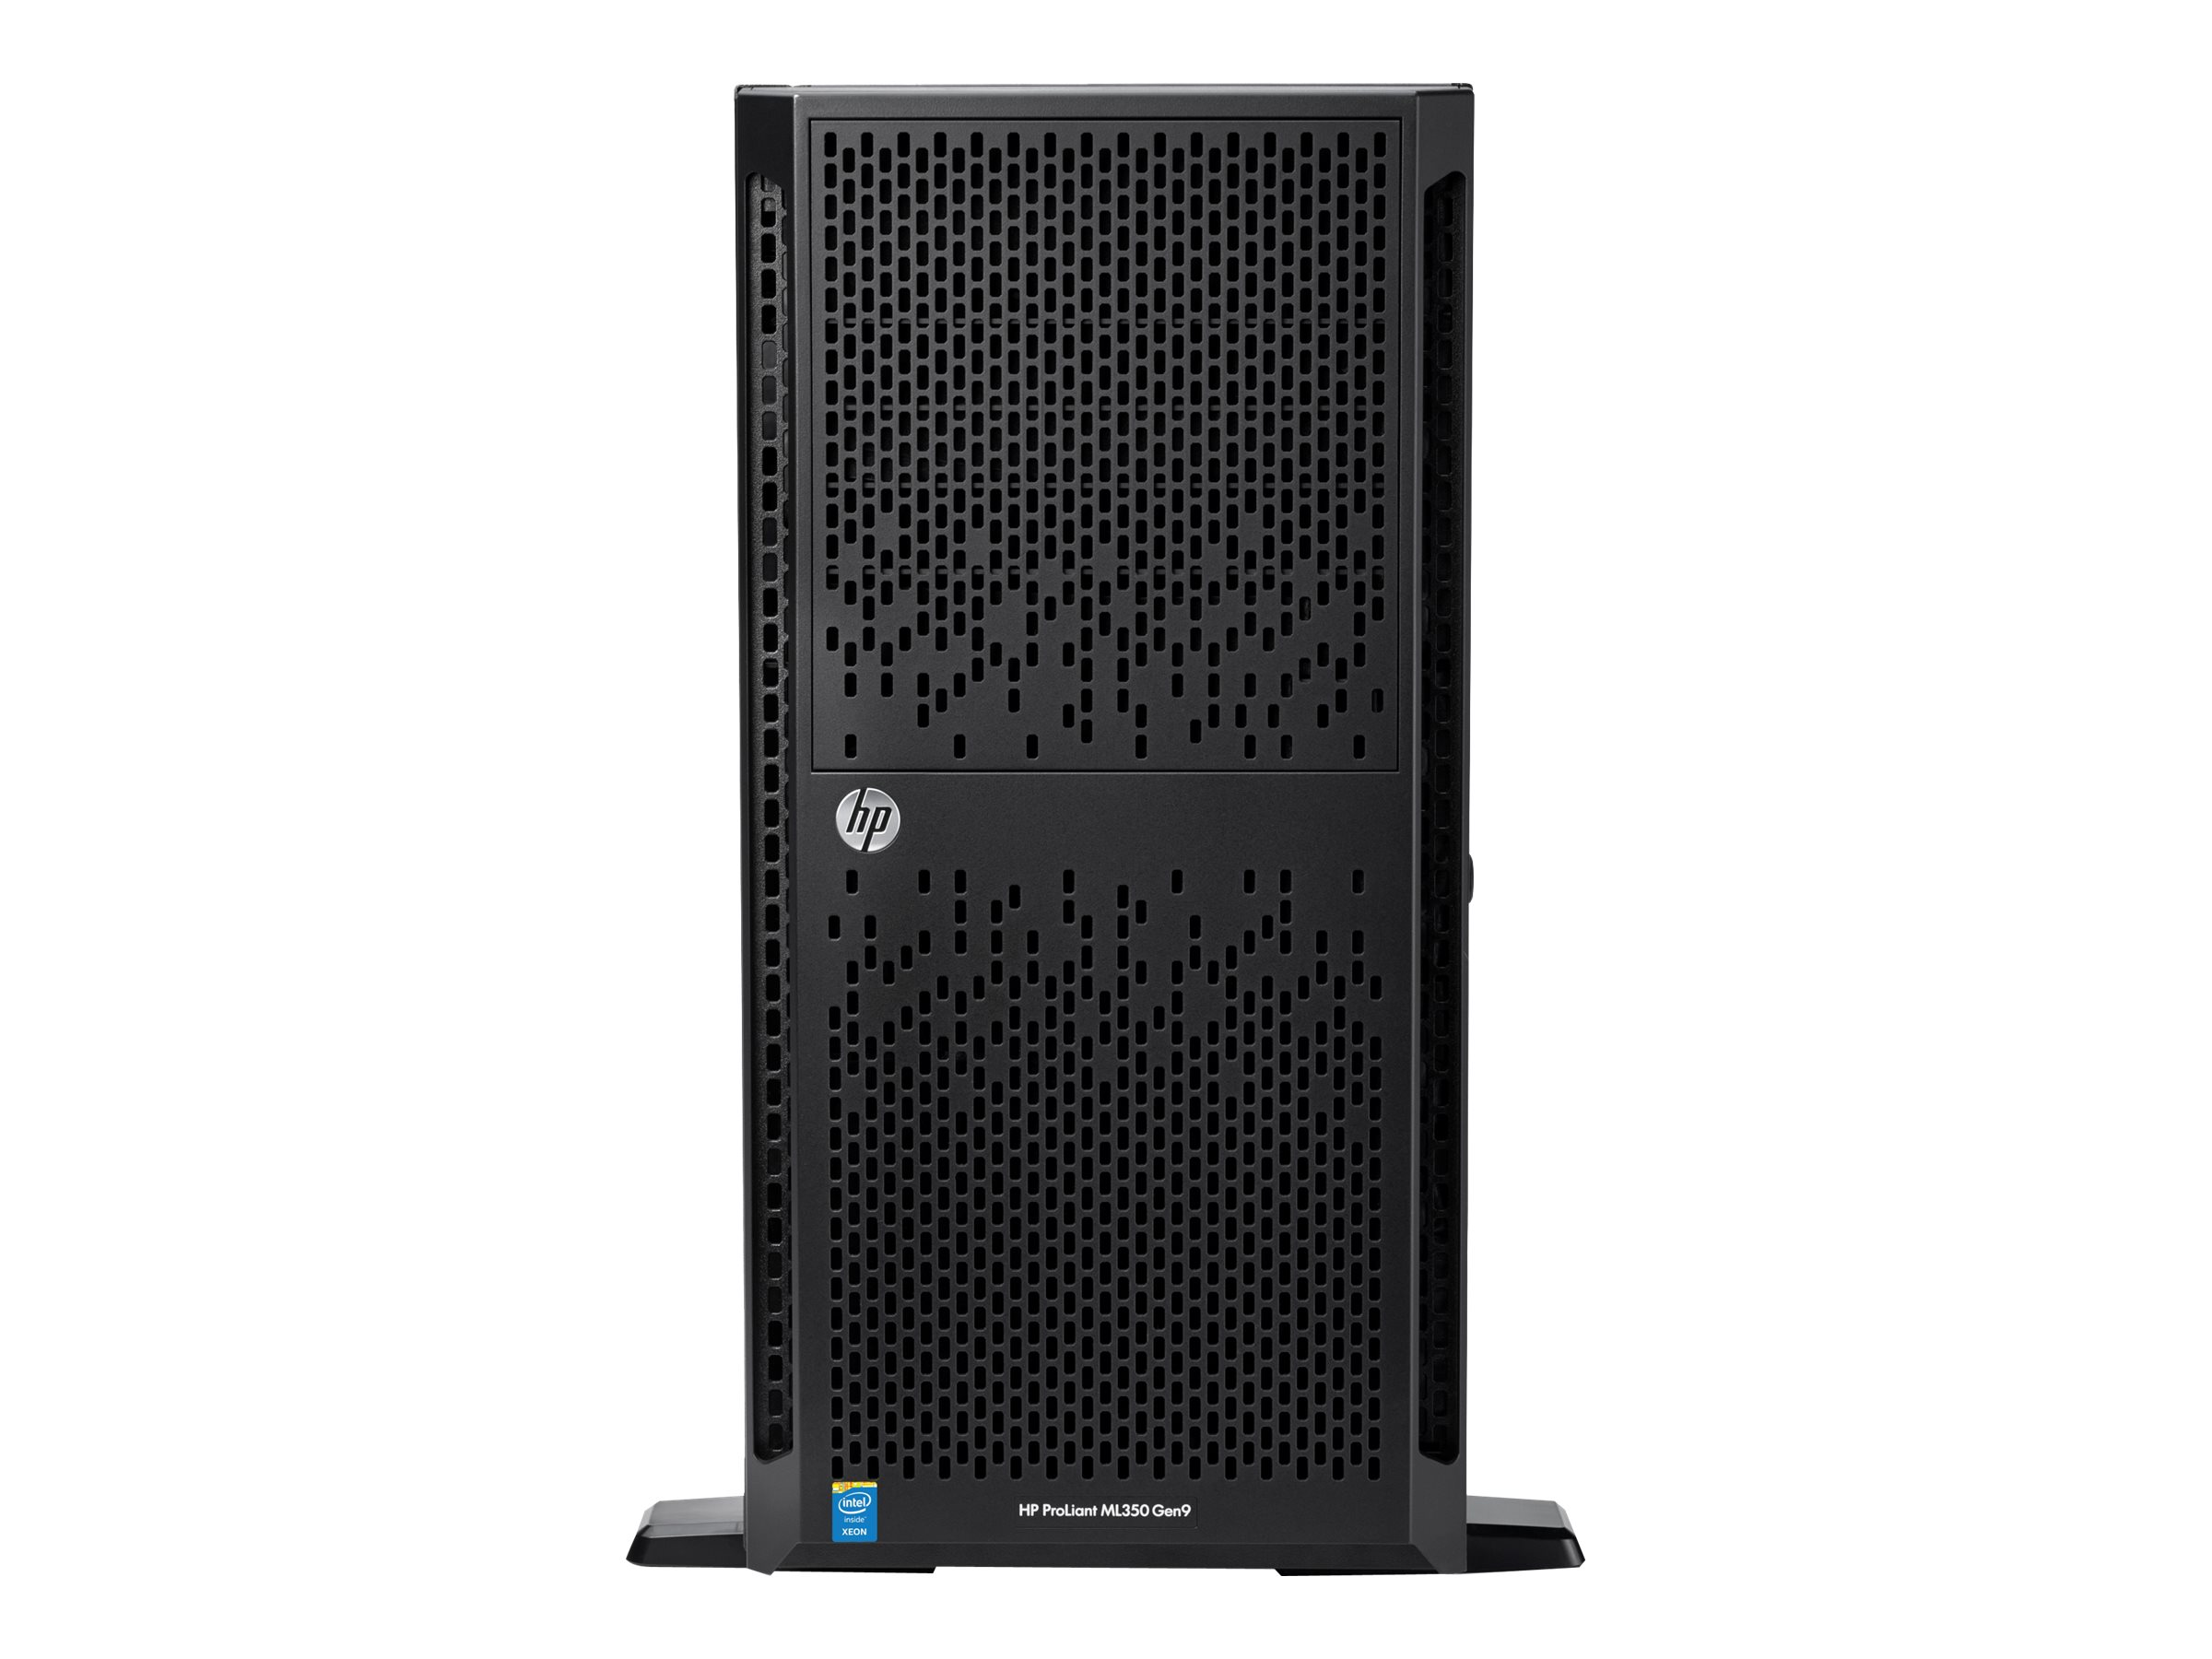 HPE ProLiant ML350 Gen9 Entry - Server - Tower - 5U - zweiweg - 1 x Xeon E5-2609V4 / 1.7 GHz